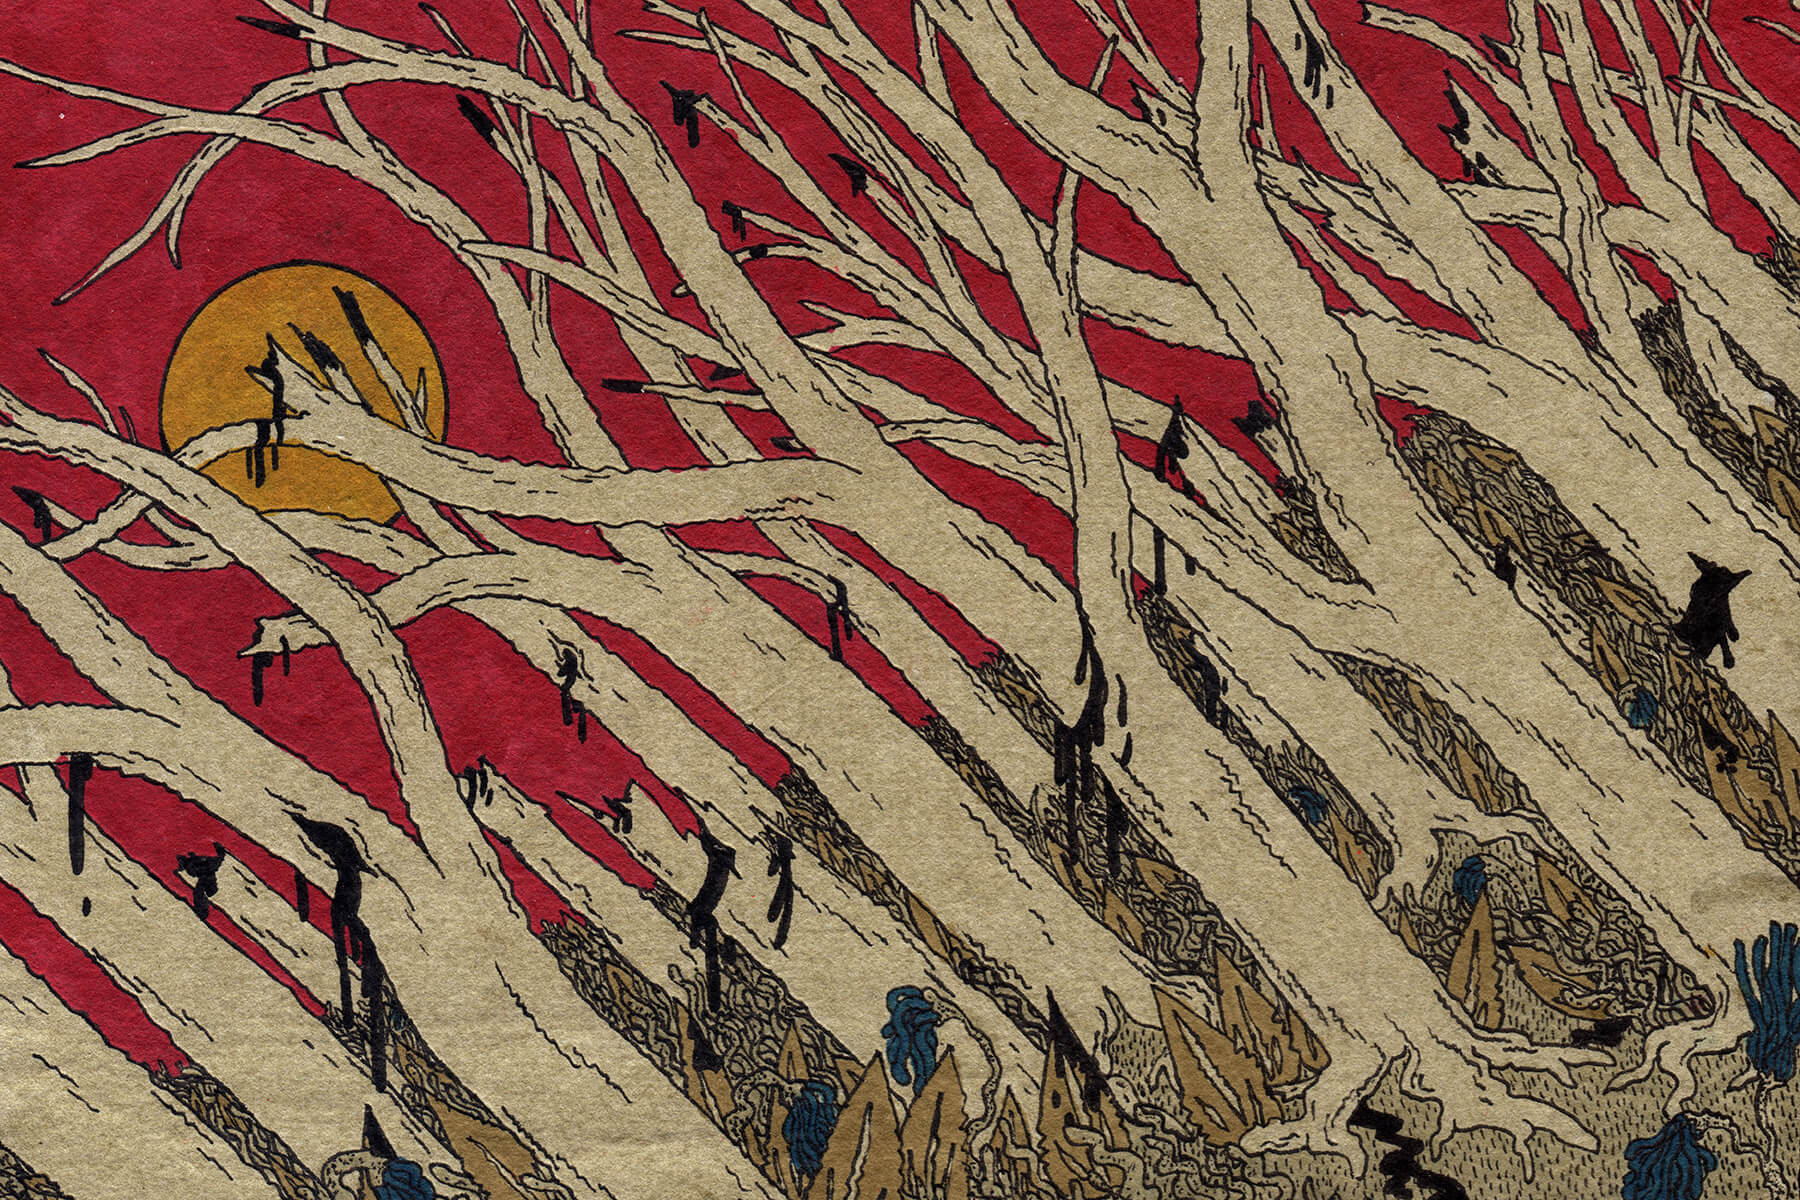 A print that shows an off-kilter forest of dead trees that appears to be wounded and are oozing black goo. The sky behind them is a deep crimson with a golden sun.